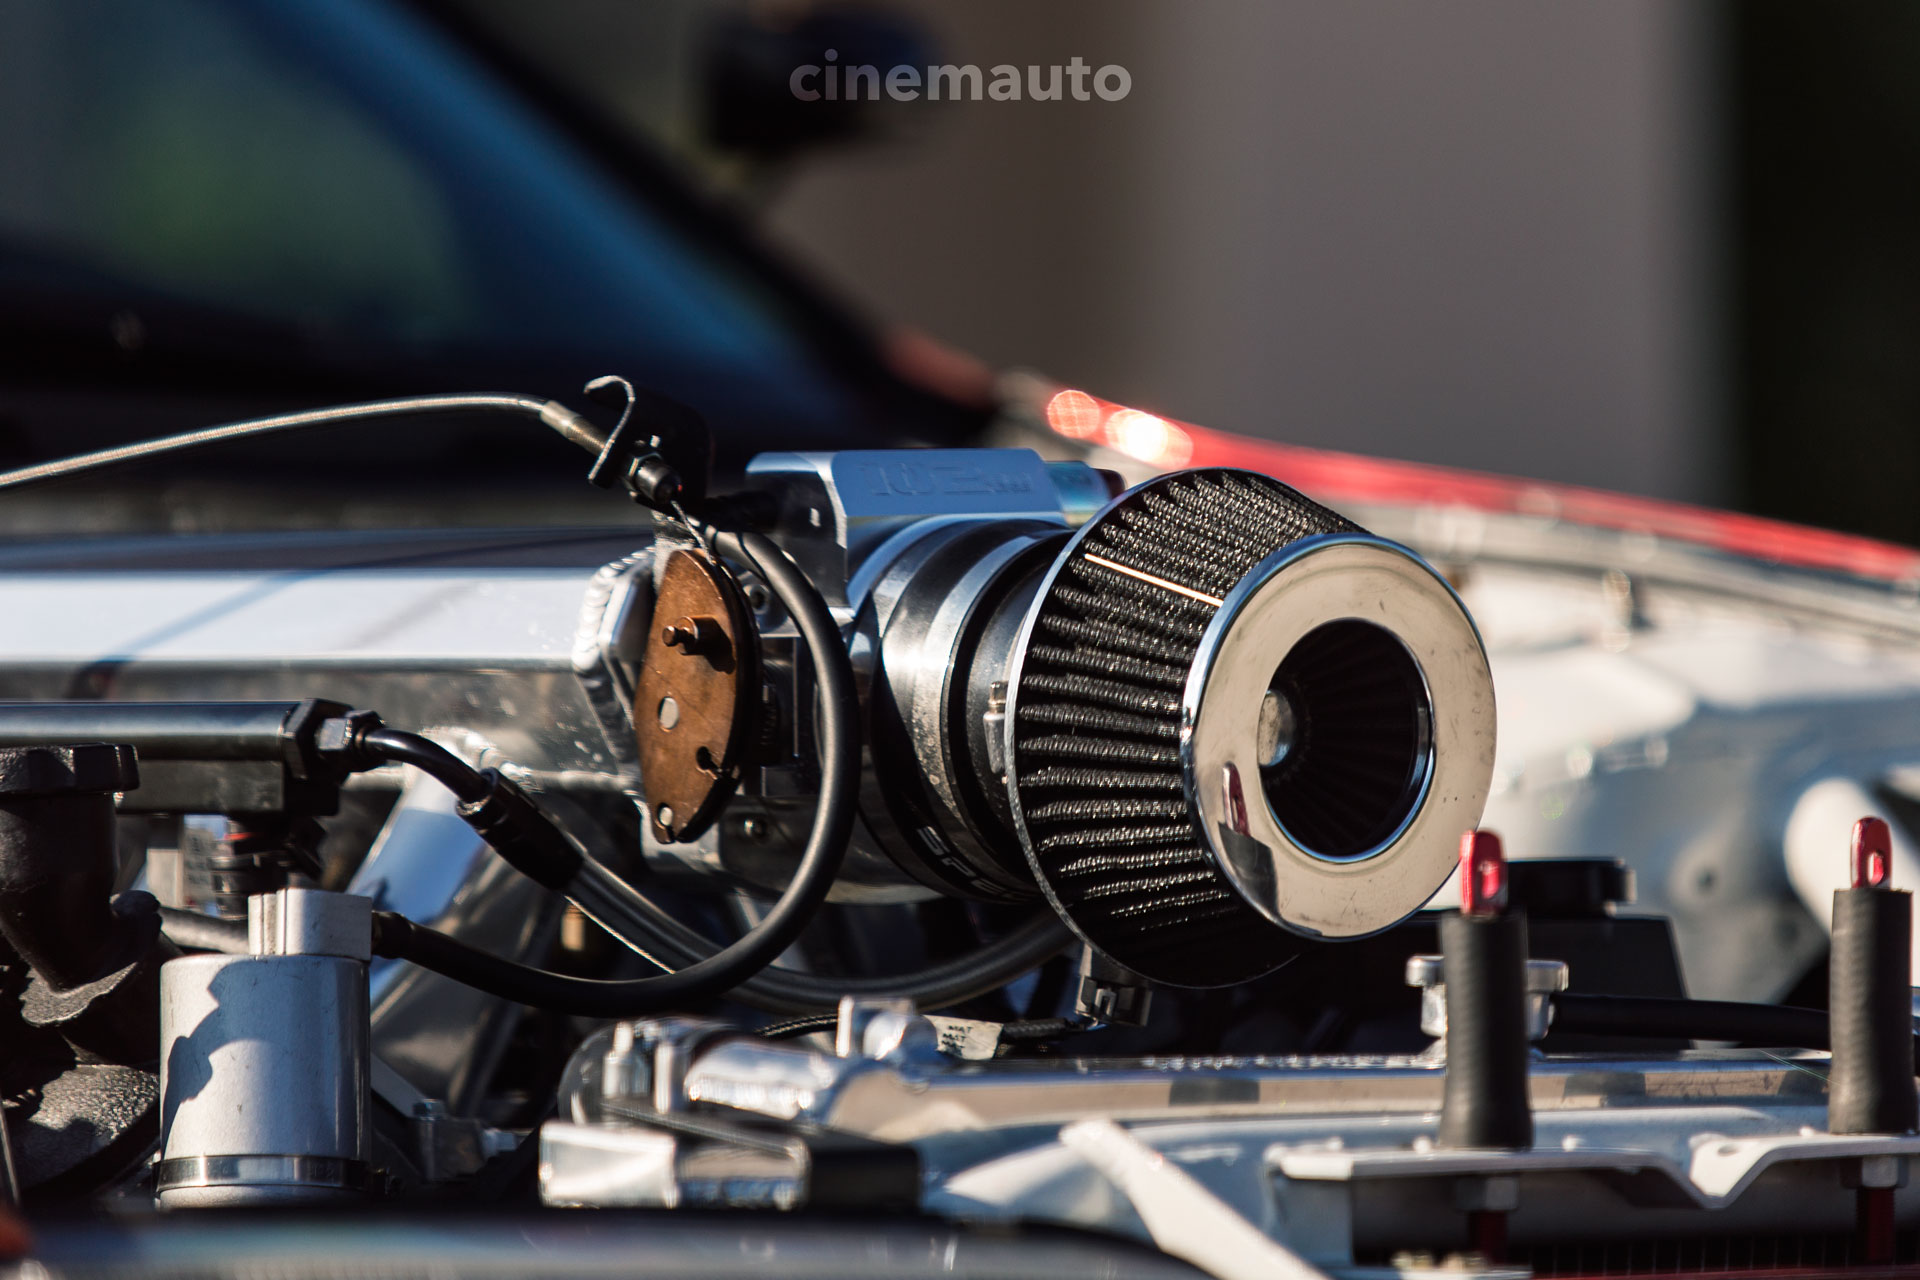 cinemauto-midwest-car-photography-jp3.jpg